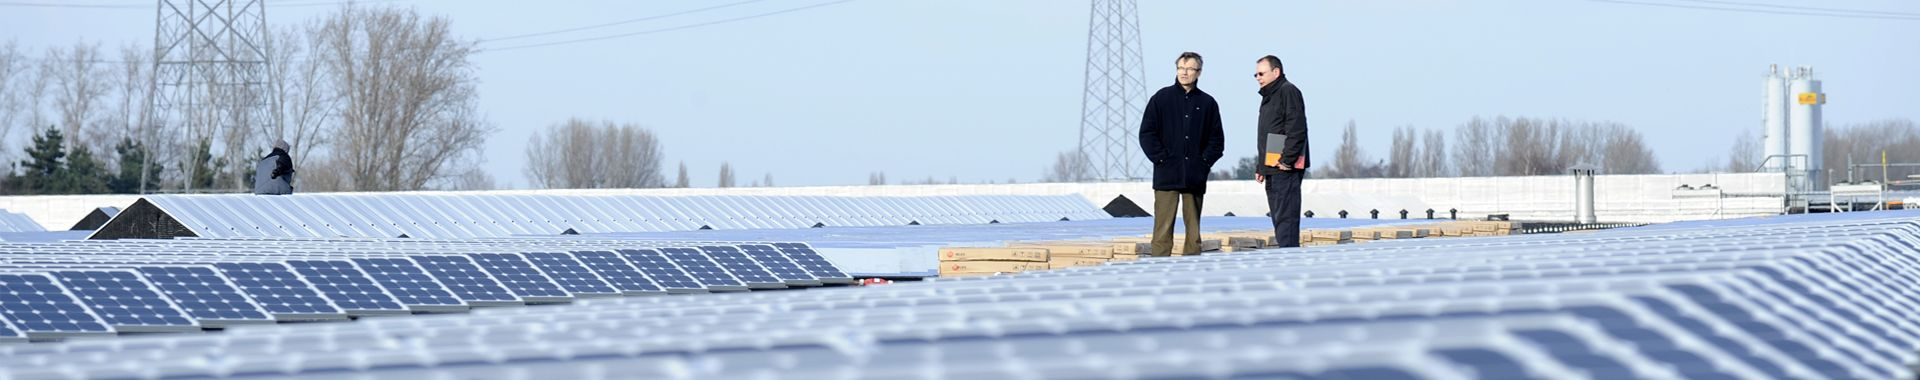 Managers on business roof with solar panels